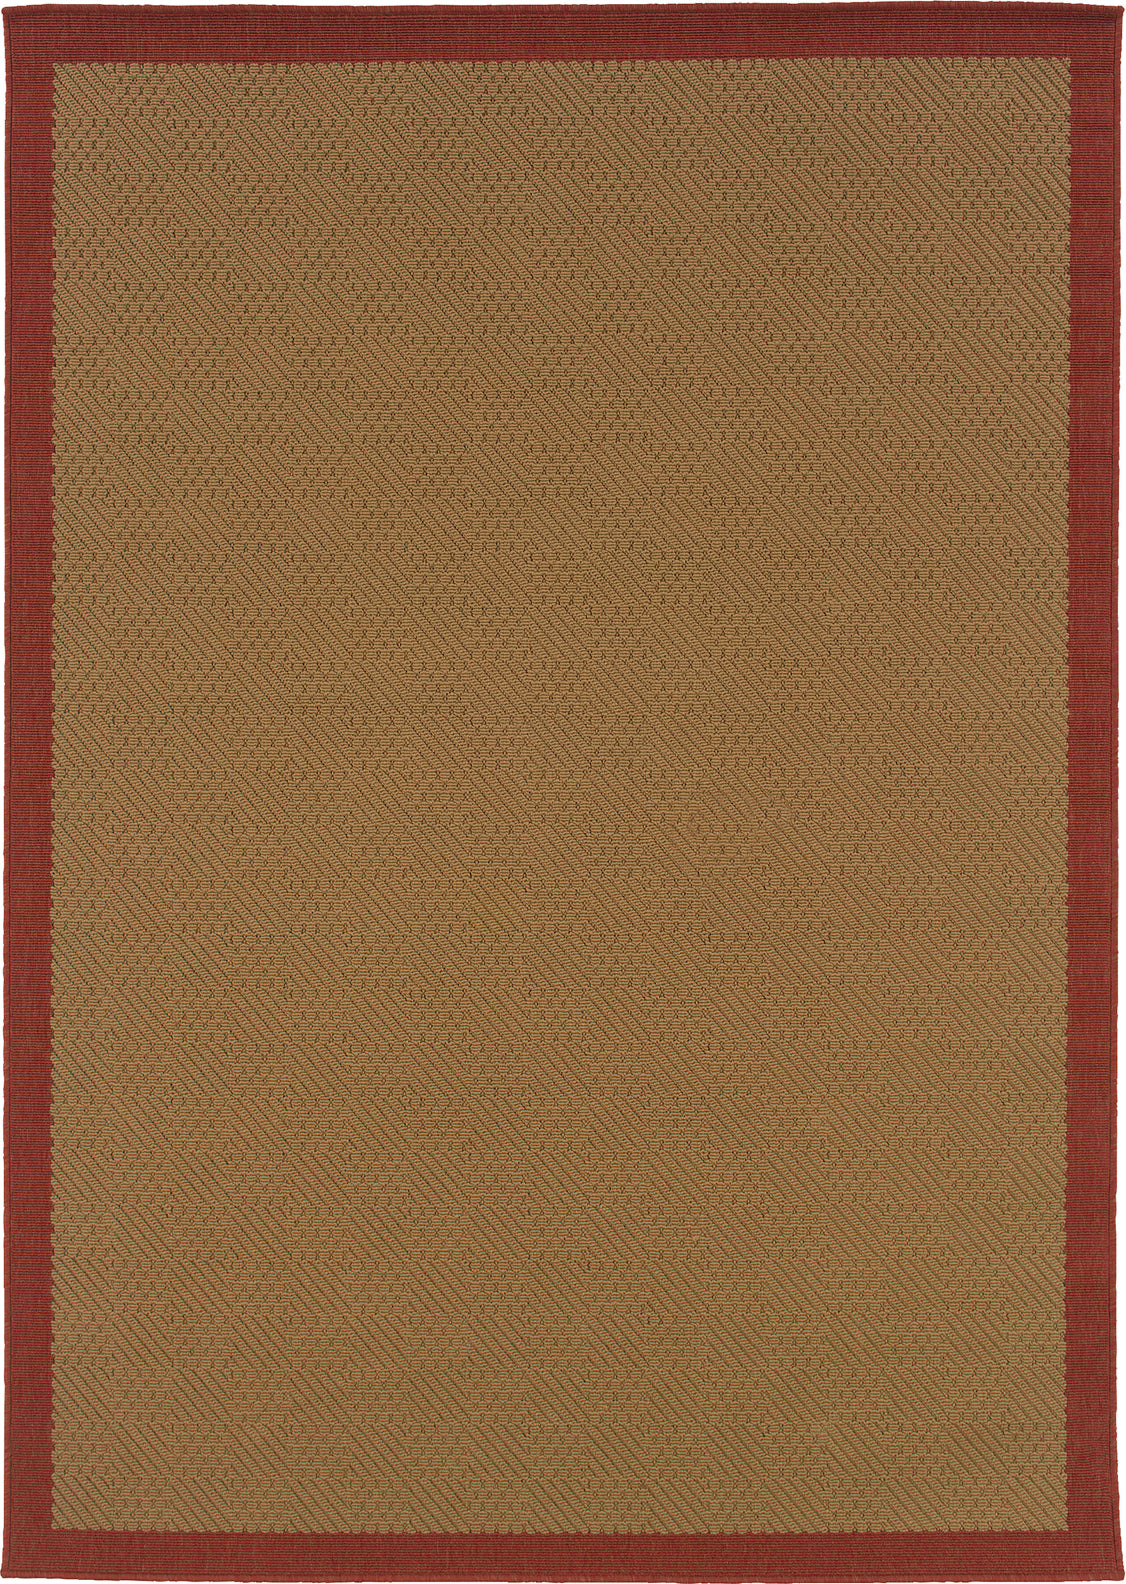 Oriental Weavers Lanai 525O8 Beige/Red Area Rug main image